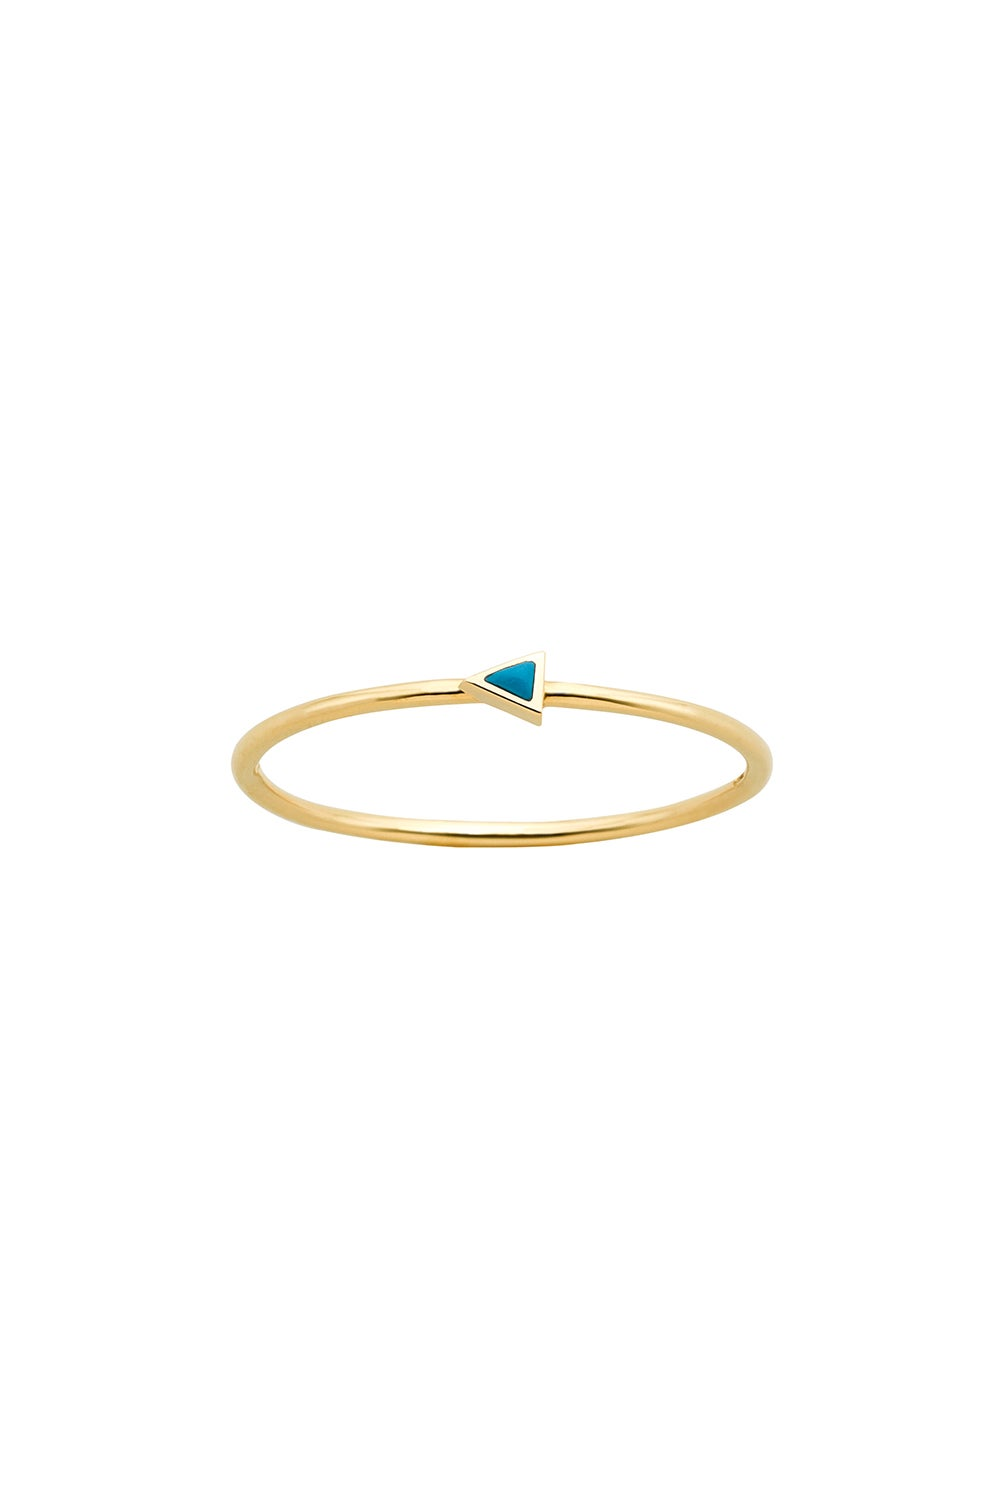 Extra Fine Arrow Ring Gold Turquoise